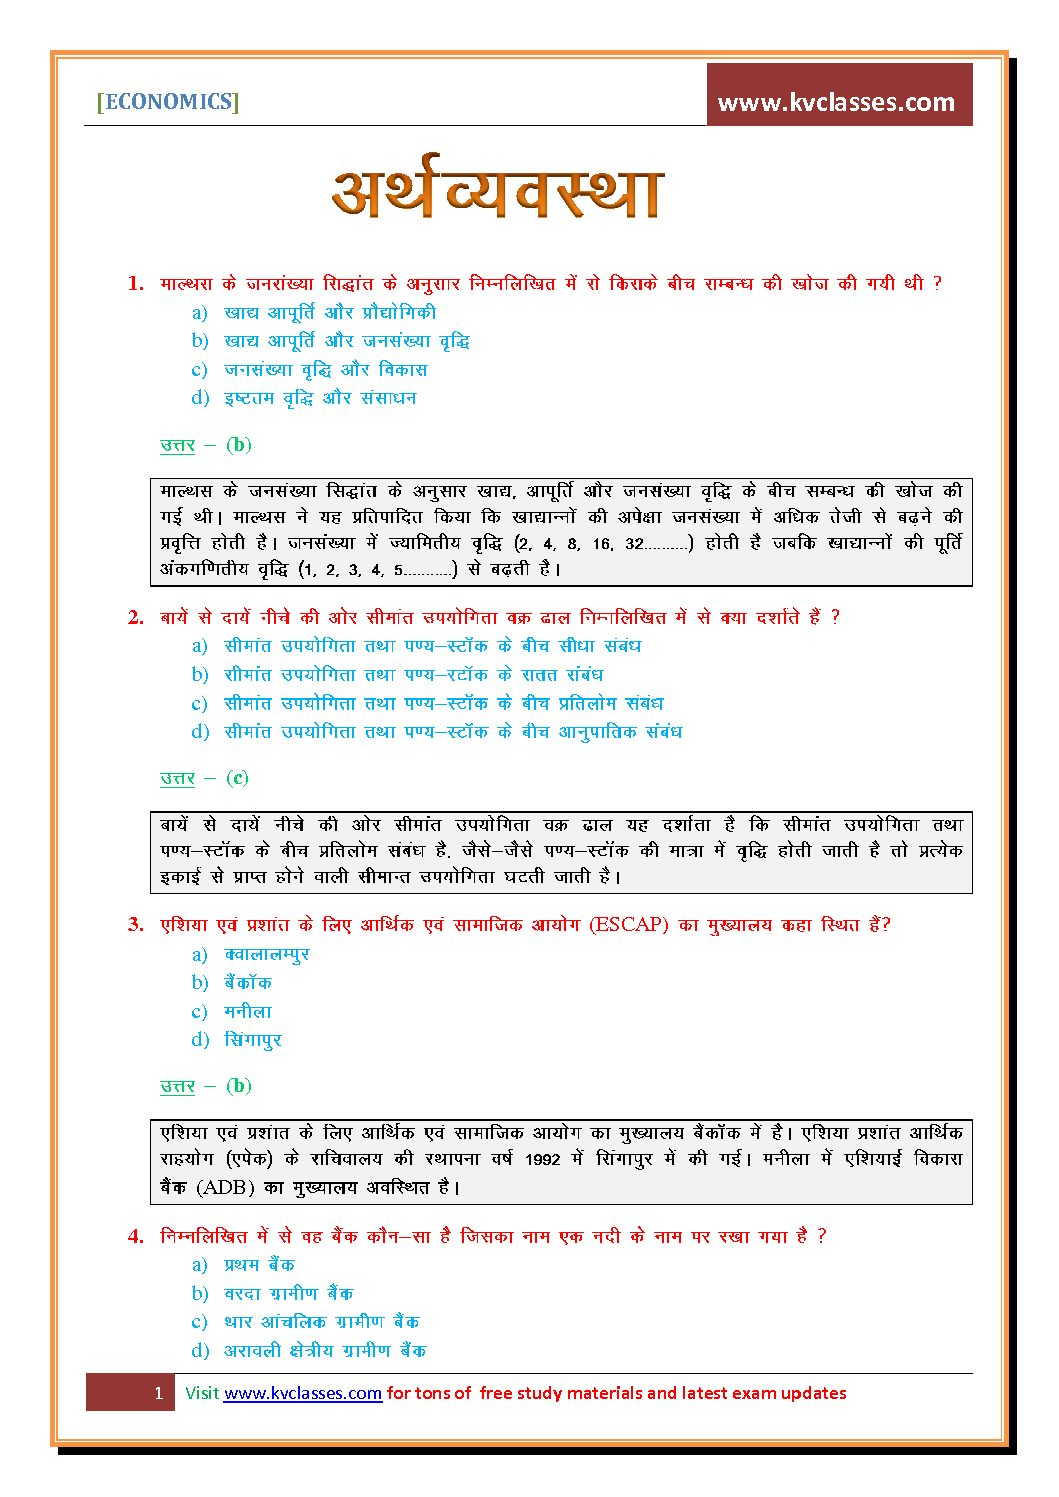 Economics MCQ With Details Explanation in Hindi PDF Download